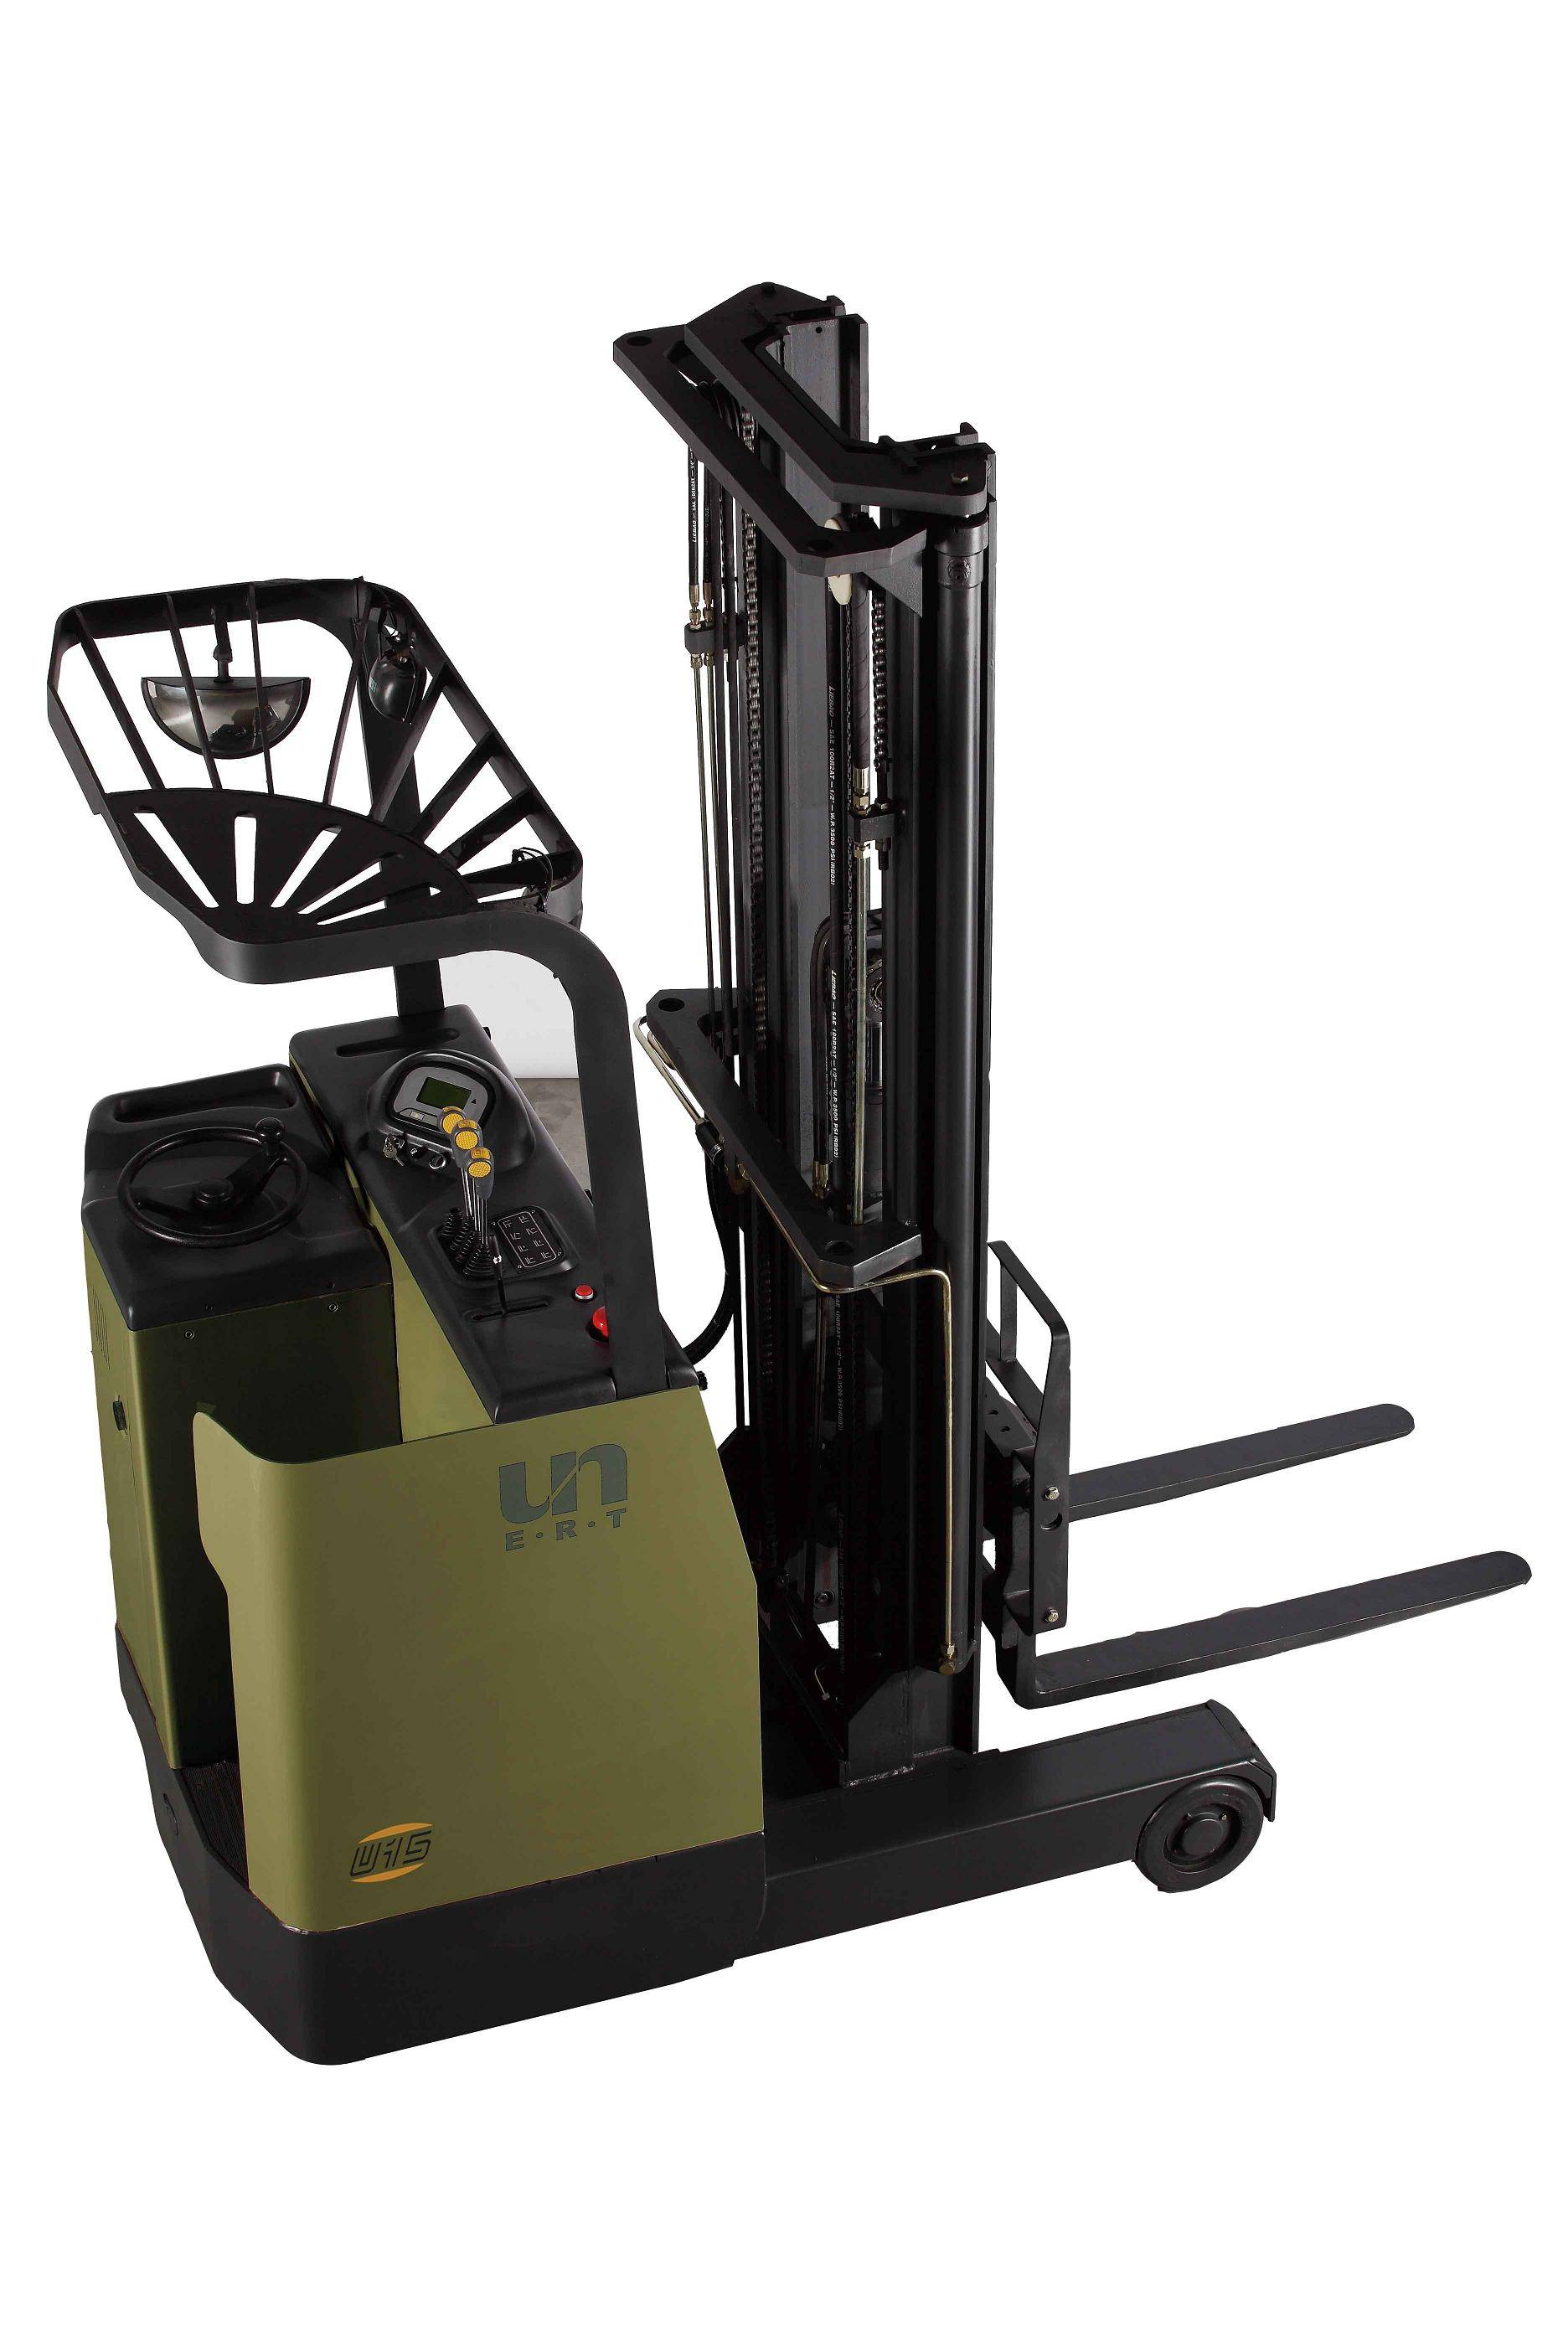 Stand on reach truck zhejiang un forklift co ltd for Un stand